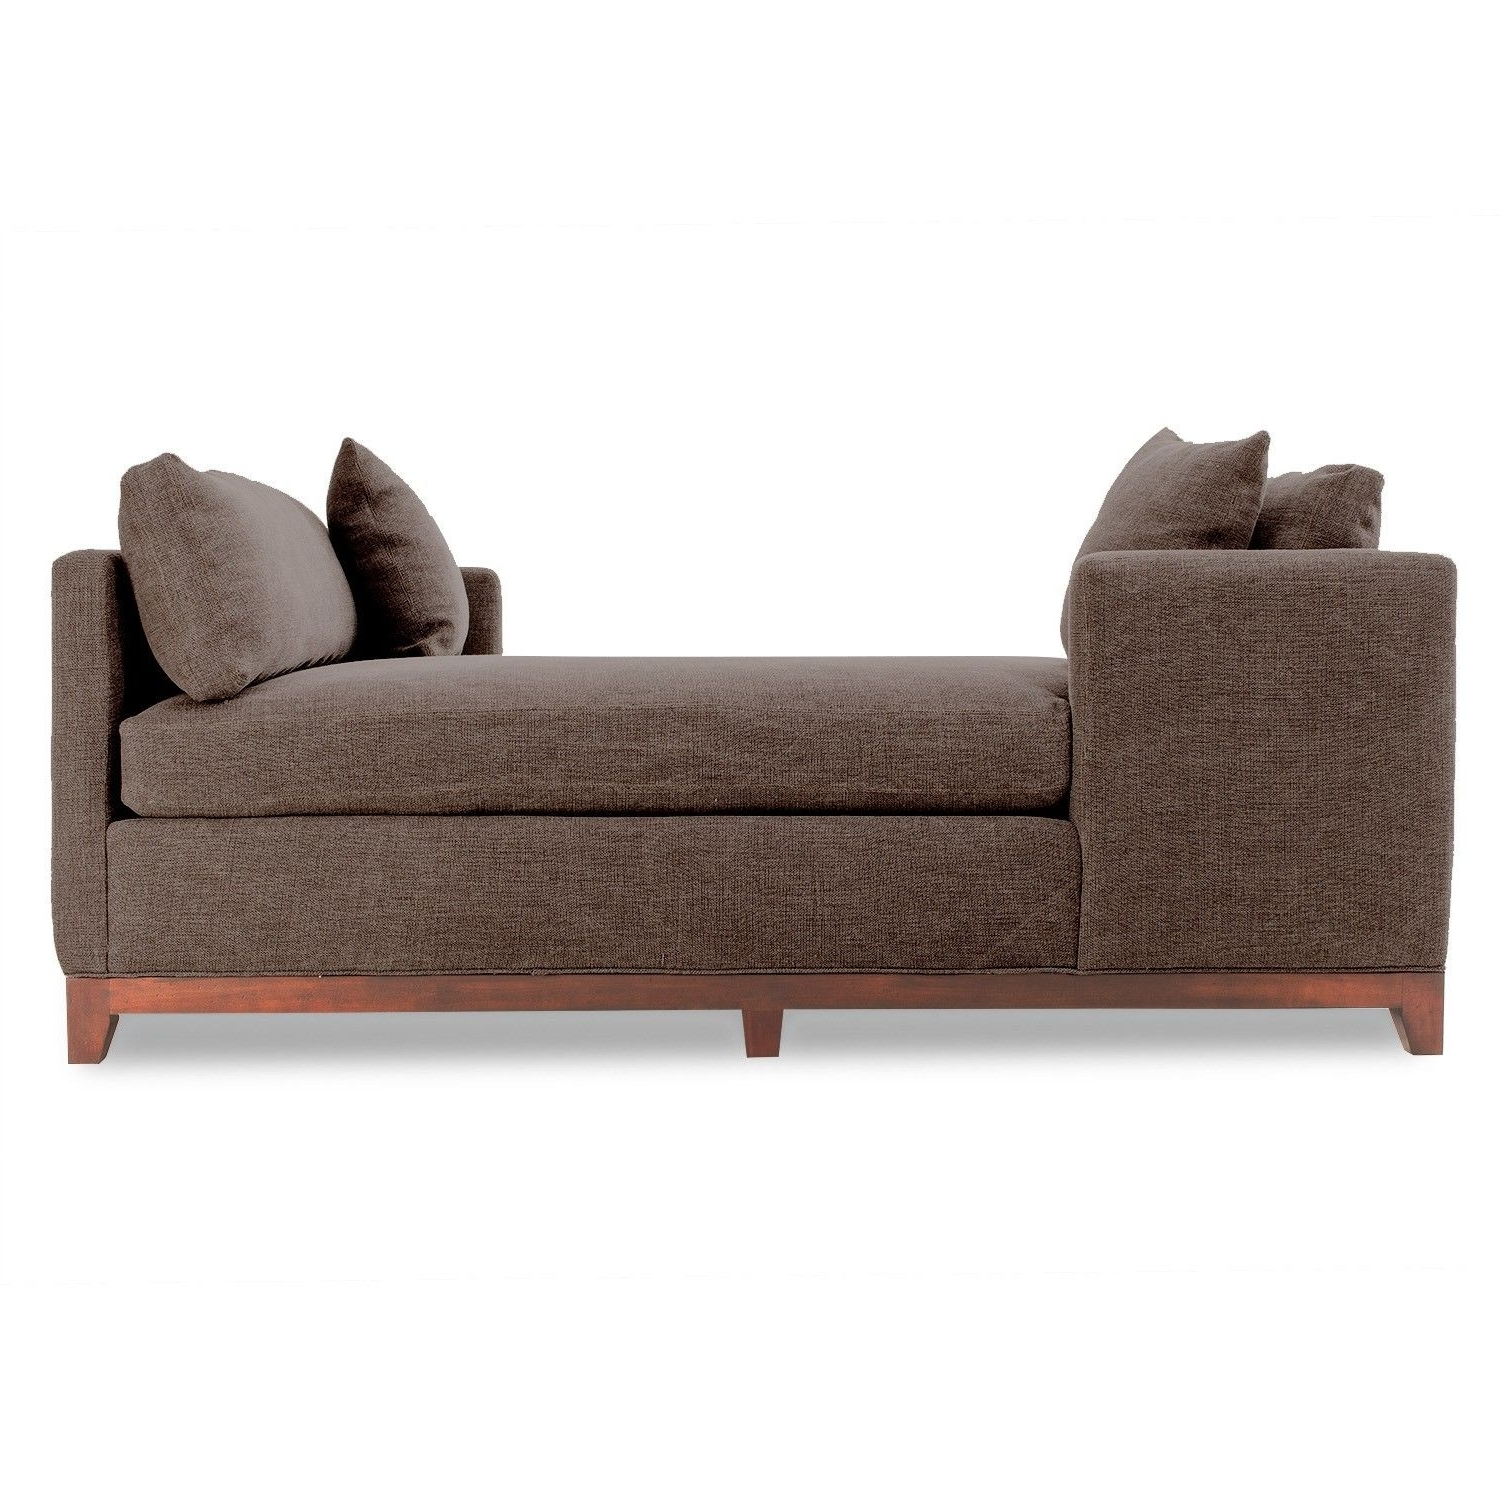 Trendy Chaise Lounge Sofa For Sale – Home And Textiles Pertaining To Chaise Lounge Sofas For Sale (View 15 of 15)